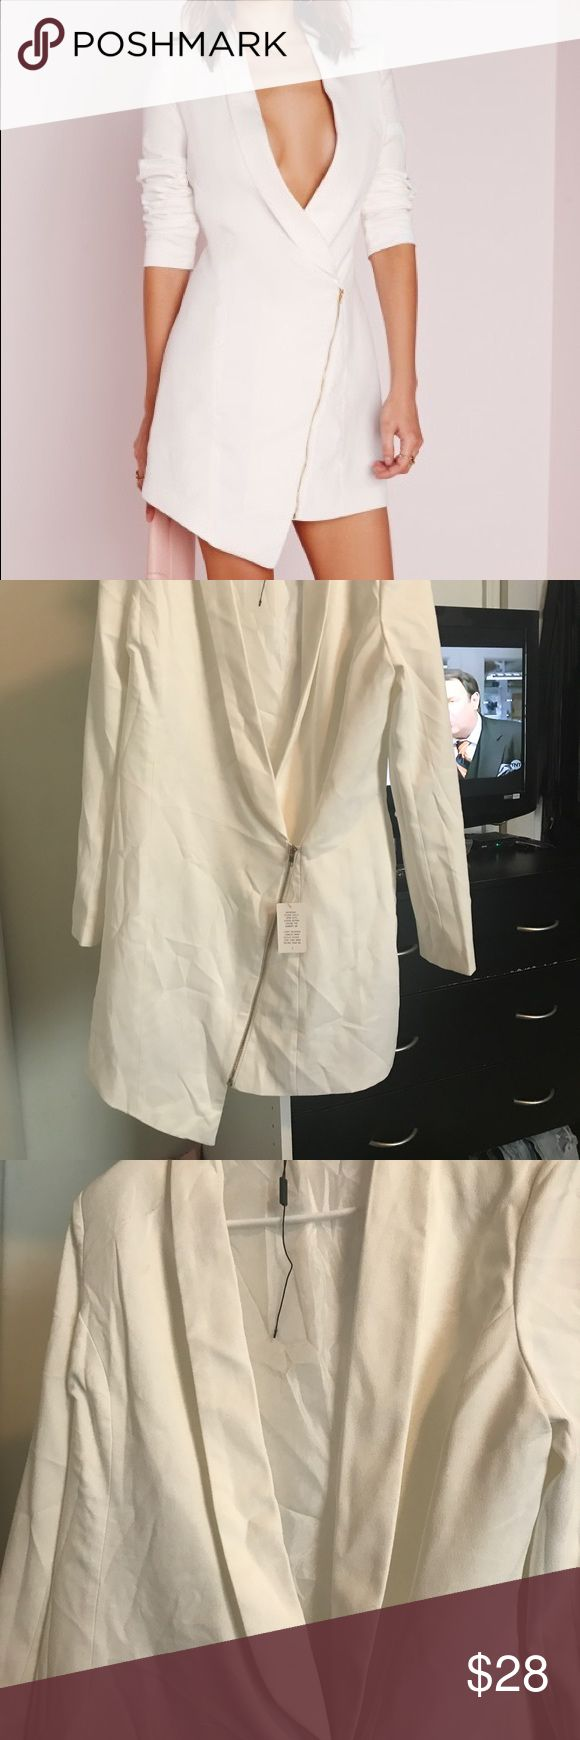 Misguided White Blazer Dress Side zip detail on white blazer dress. Never worn but has been in closet so it may need to be dry cleaned before wear. Sz U.K. 14. US 12 I believe Missguided Dresses Asymmetrical